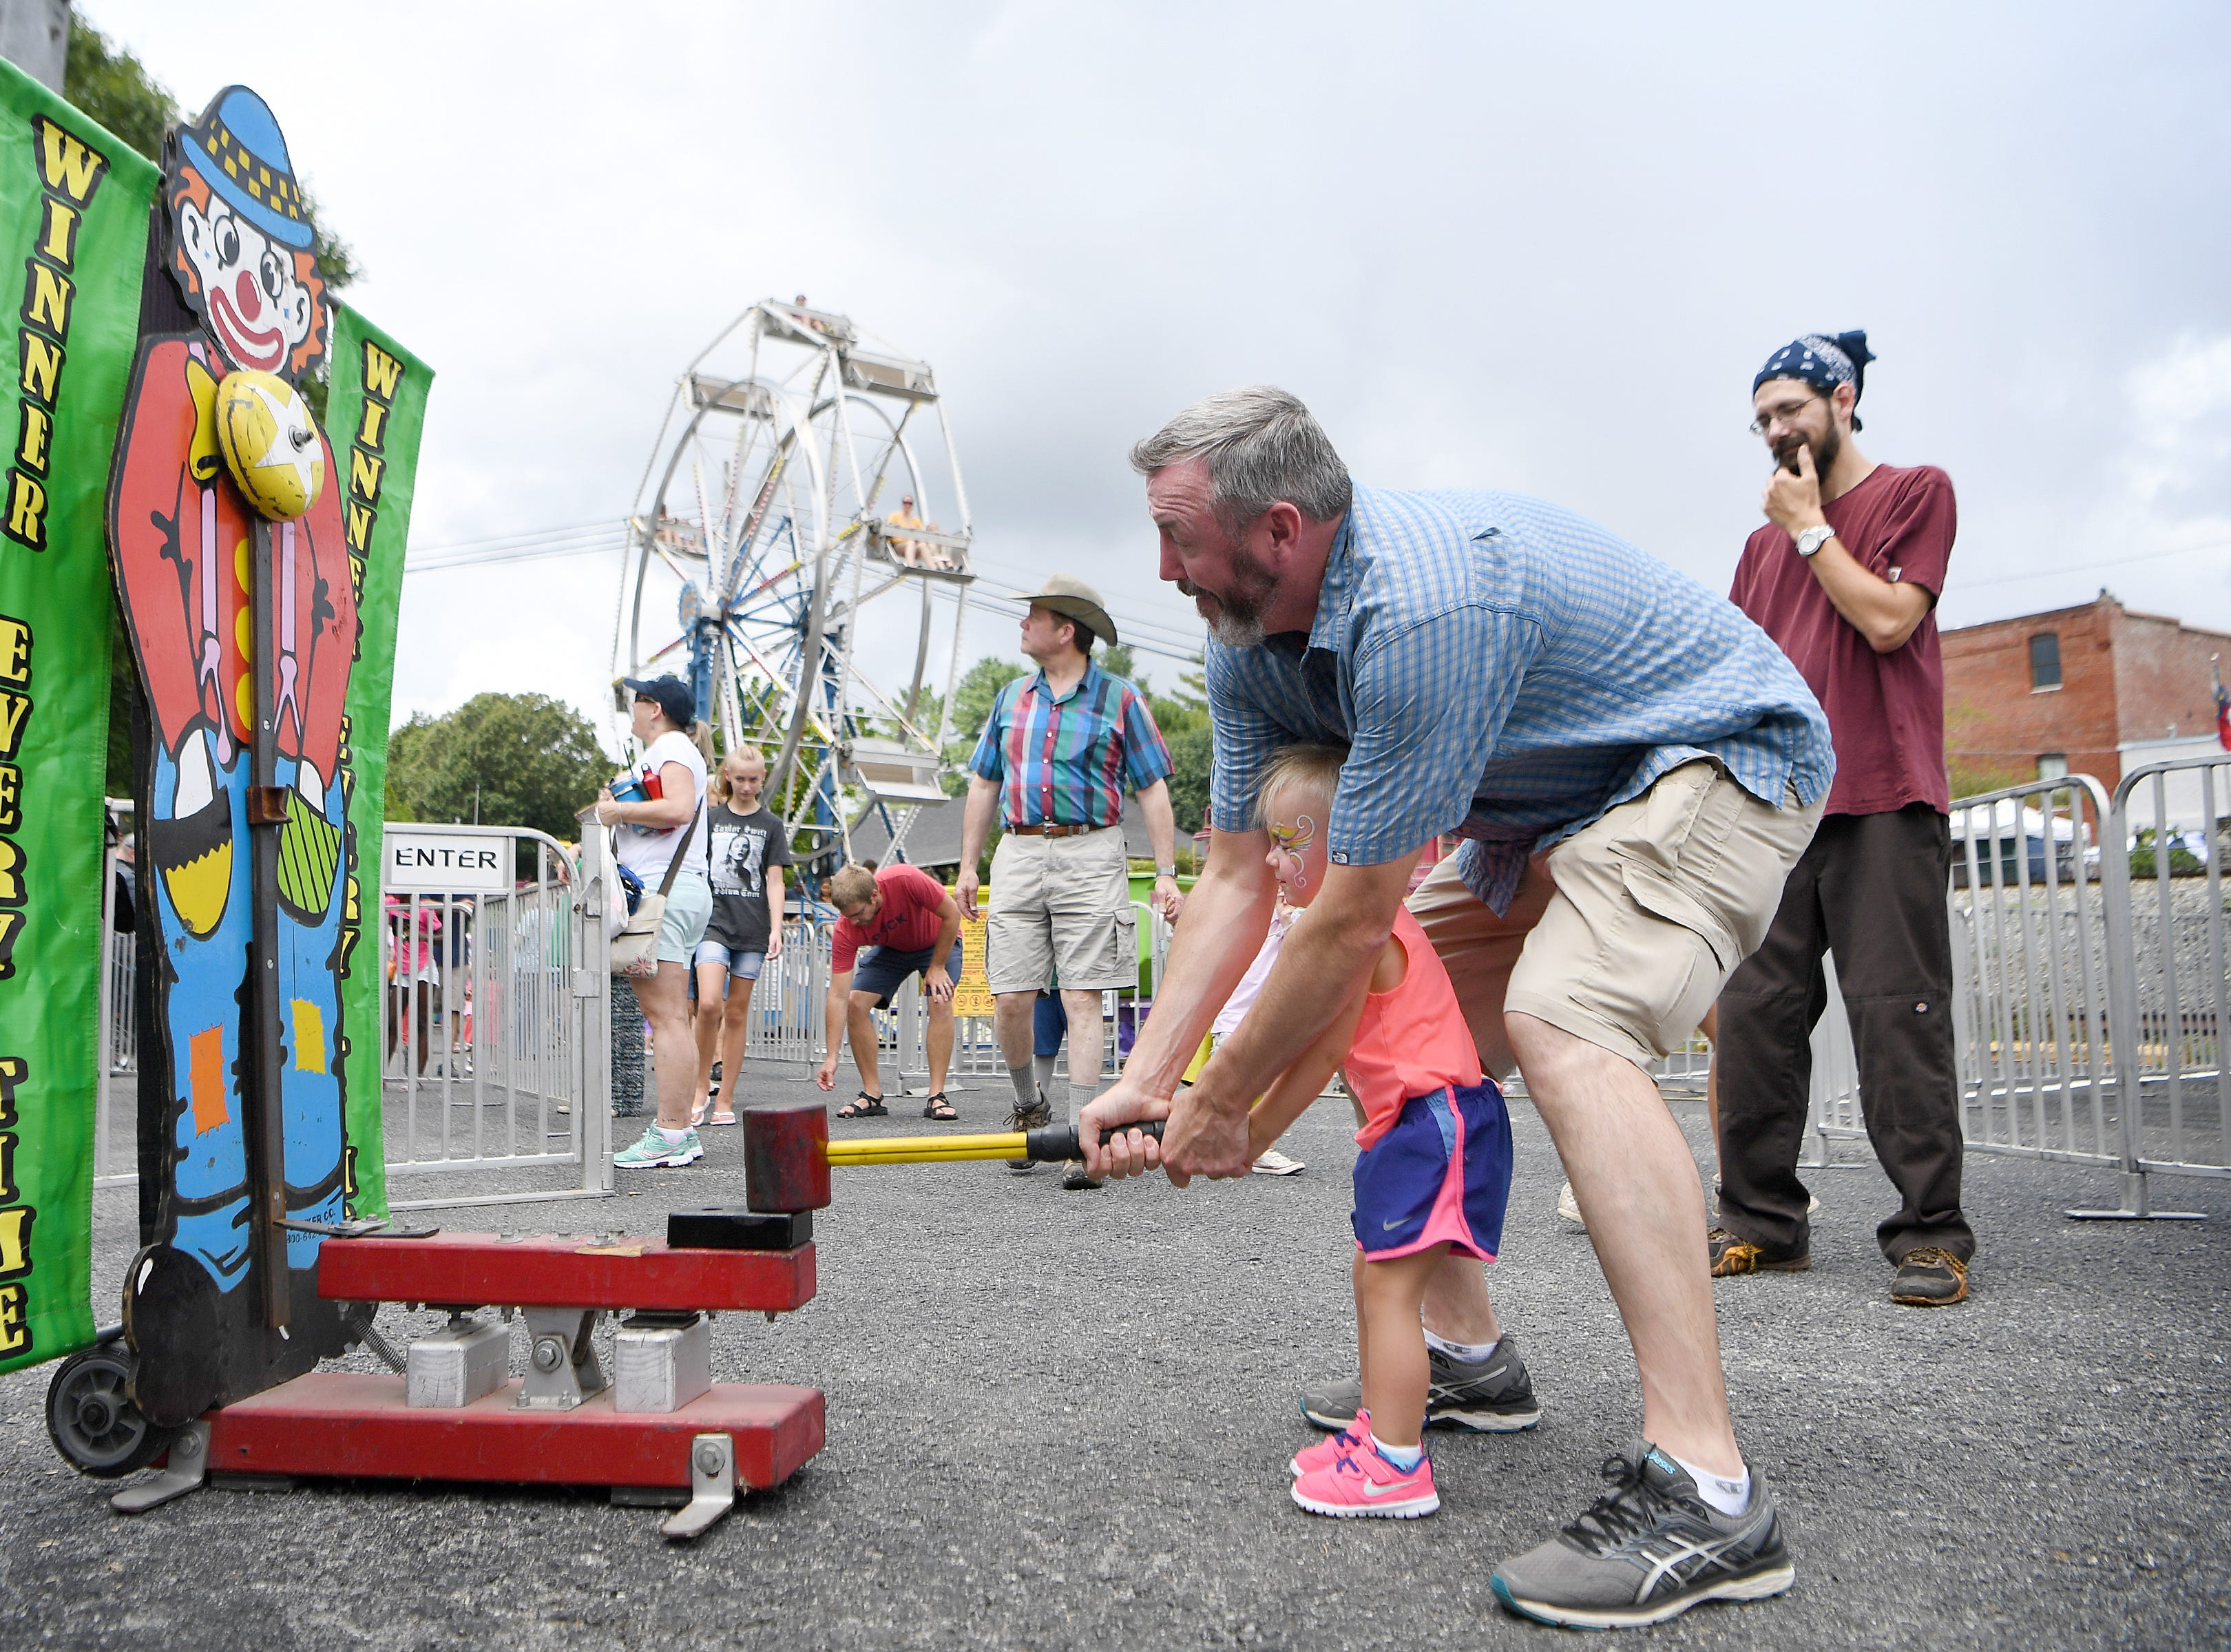 Michael Irwin helps his daughter, Josephine, 2, ring the bell on a carnival game during the 41st annual Sourwood Festival in Black Mountain on Saturday, Aug. 11, 2018.